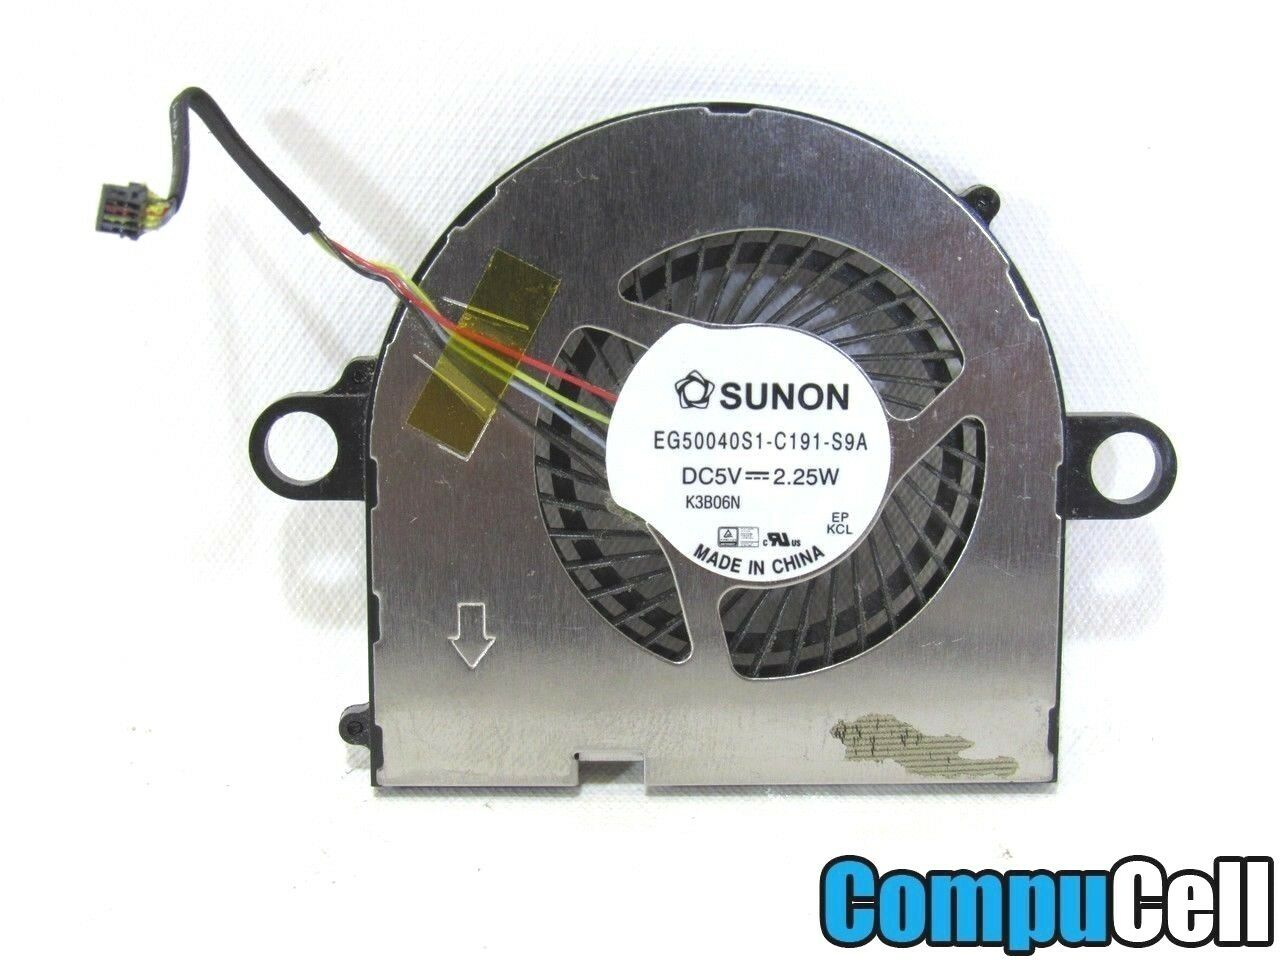 GENUINE OEM Lenovo IdeaPad Yoga 11 20246 CPU Cooling Fan With Cable EG50040S1